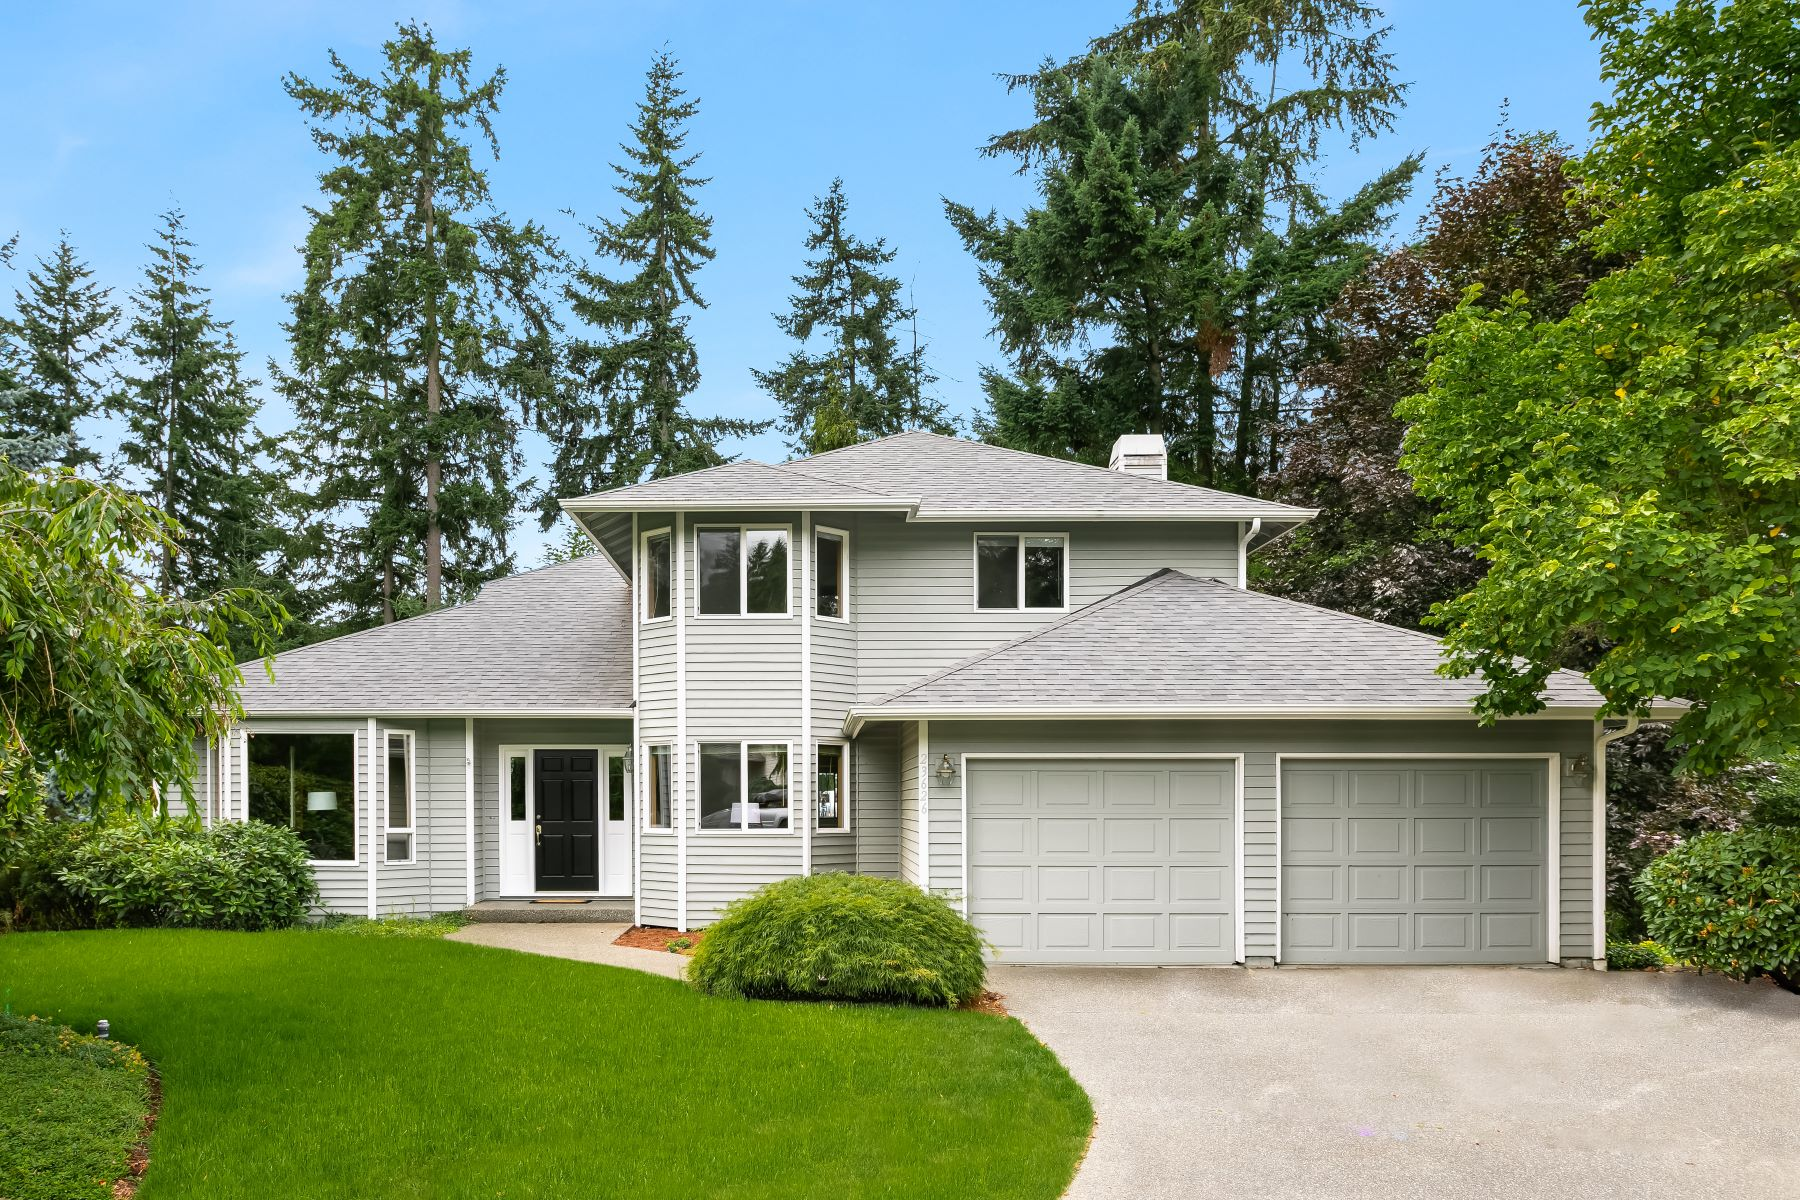 Single Family Homes for Sale at 23626 97th Place West, Edmonds, WA 98020 23626 97th Place W Edmonds, Washington 98020 United States